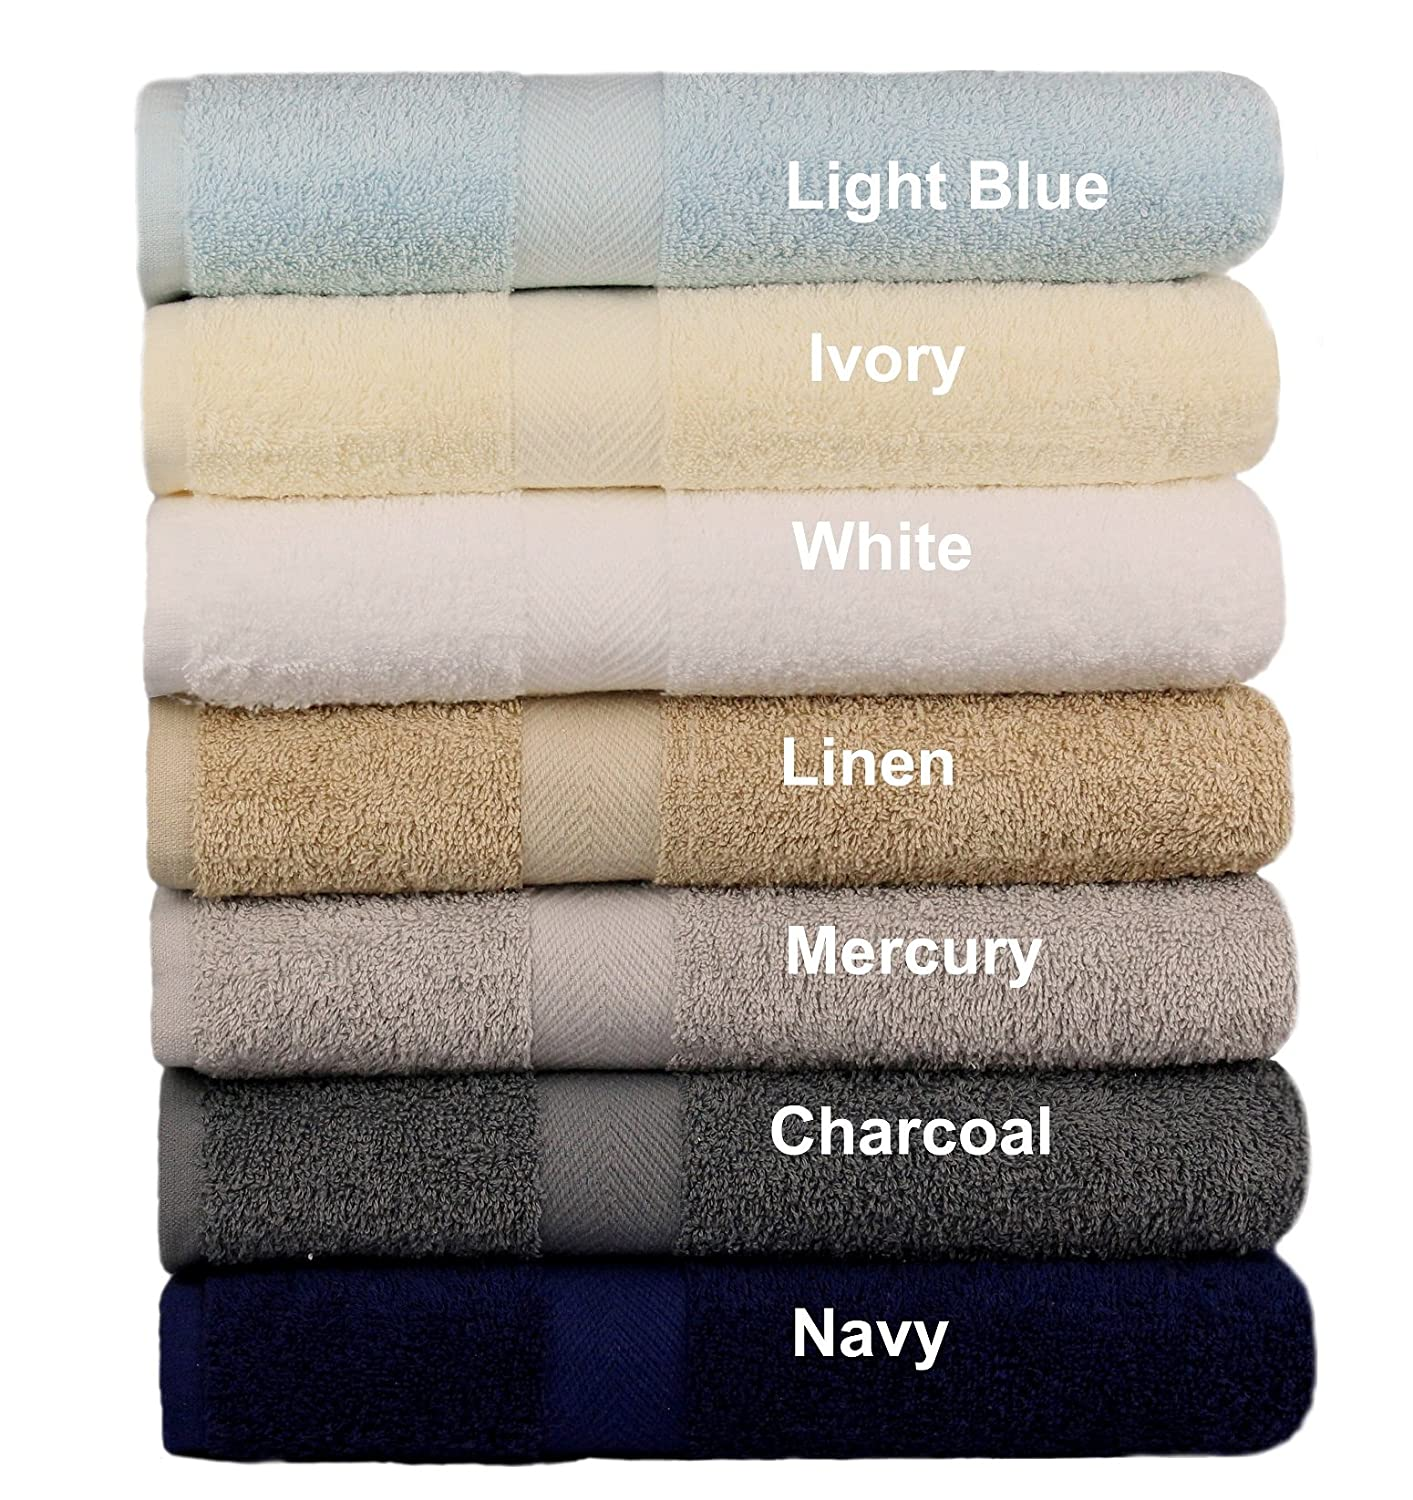 Cotton Craft - 7 Pack Multi Color Bath Towels - 100% Ringspun Cotton - 27x52 – Light Weight 450 Grams – Quick Drying and Highly Absorbent - Colors - Ivory, Light Blue, White, Linen, Mercury, Charcoal, Orient Originals Inc.